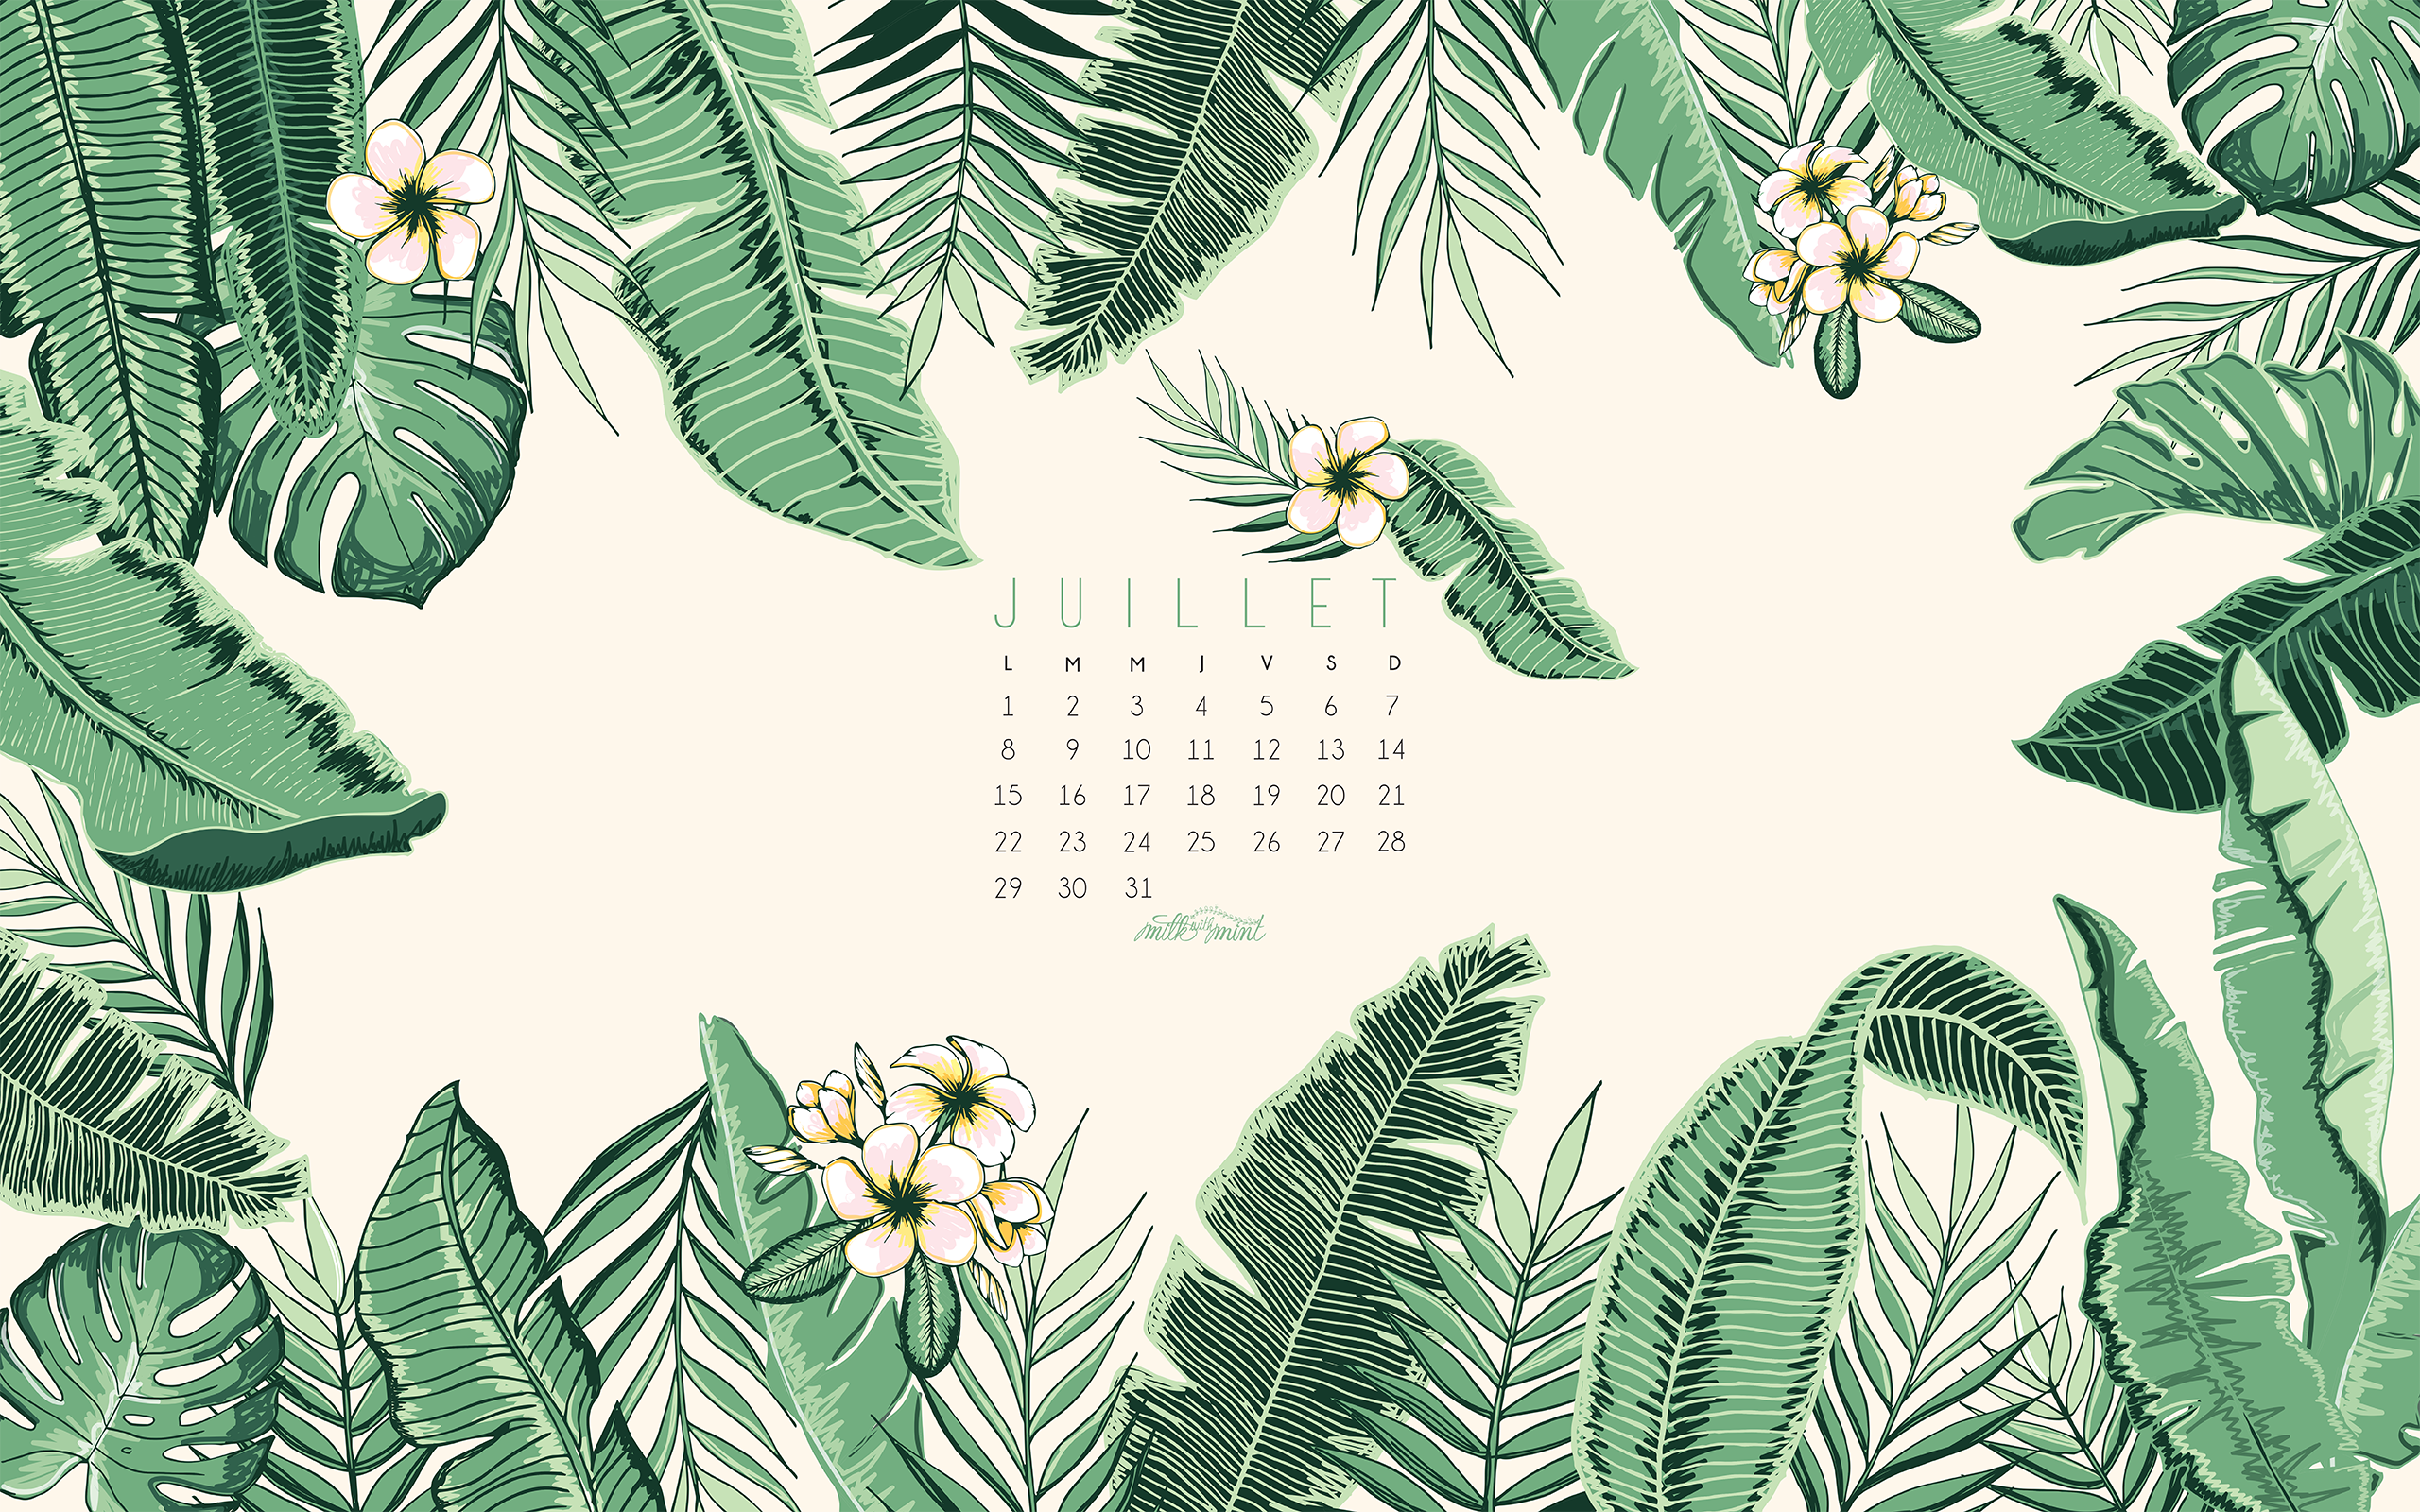 Fonds D Ecran Juillet 2019 July 2019 Wallpaper Calendar